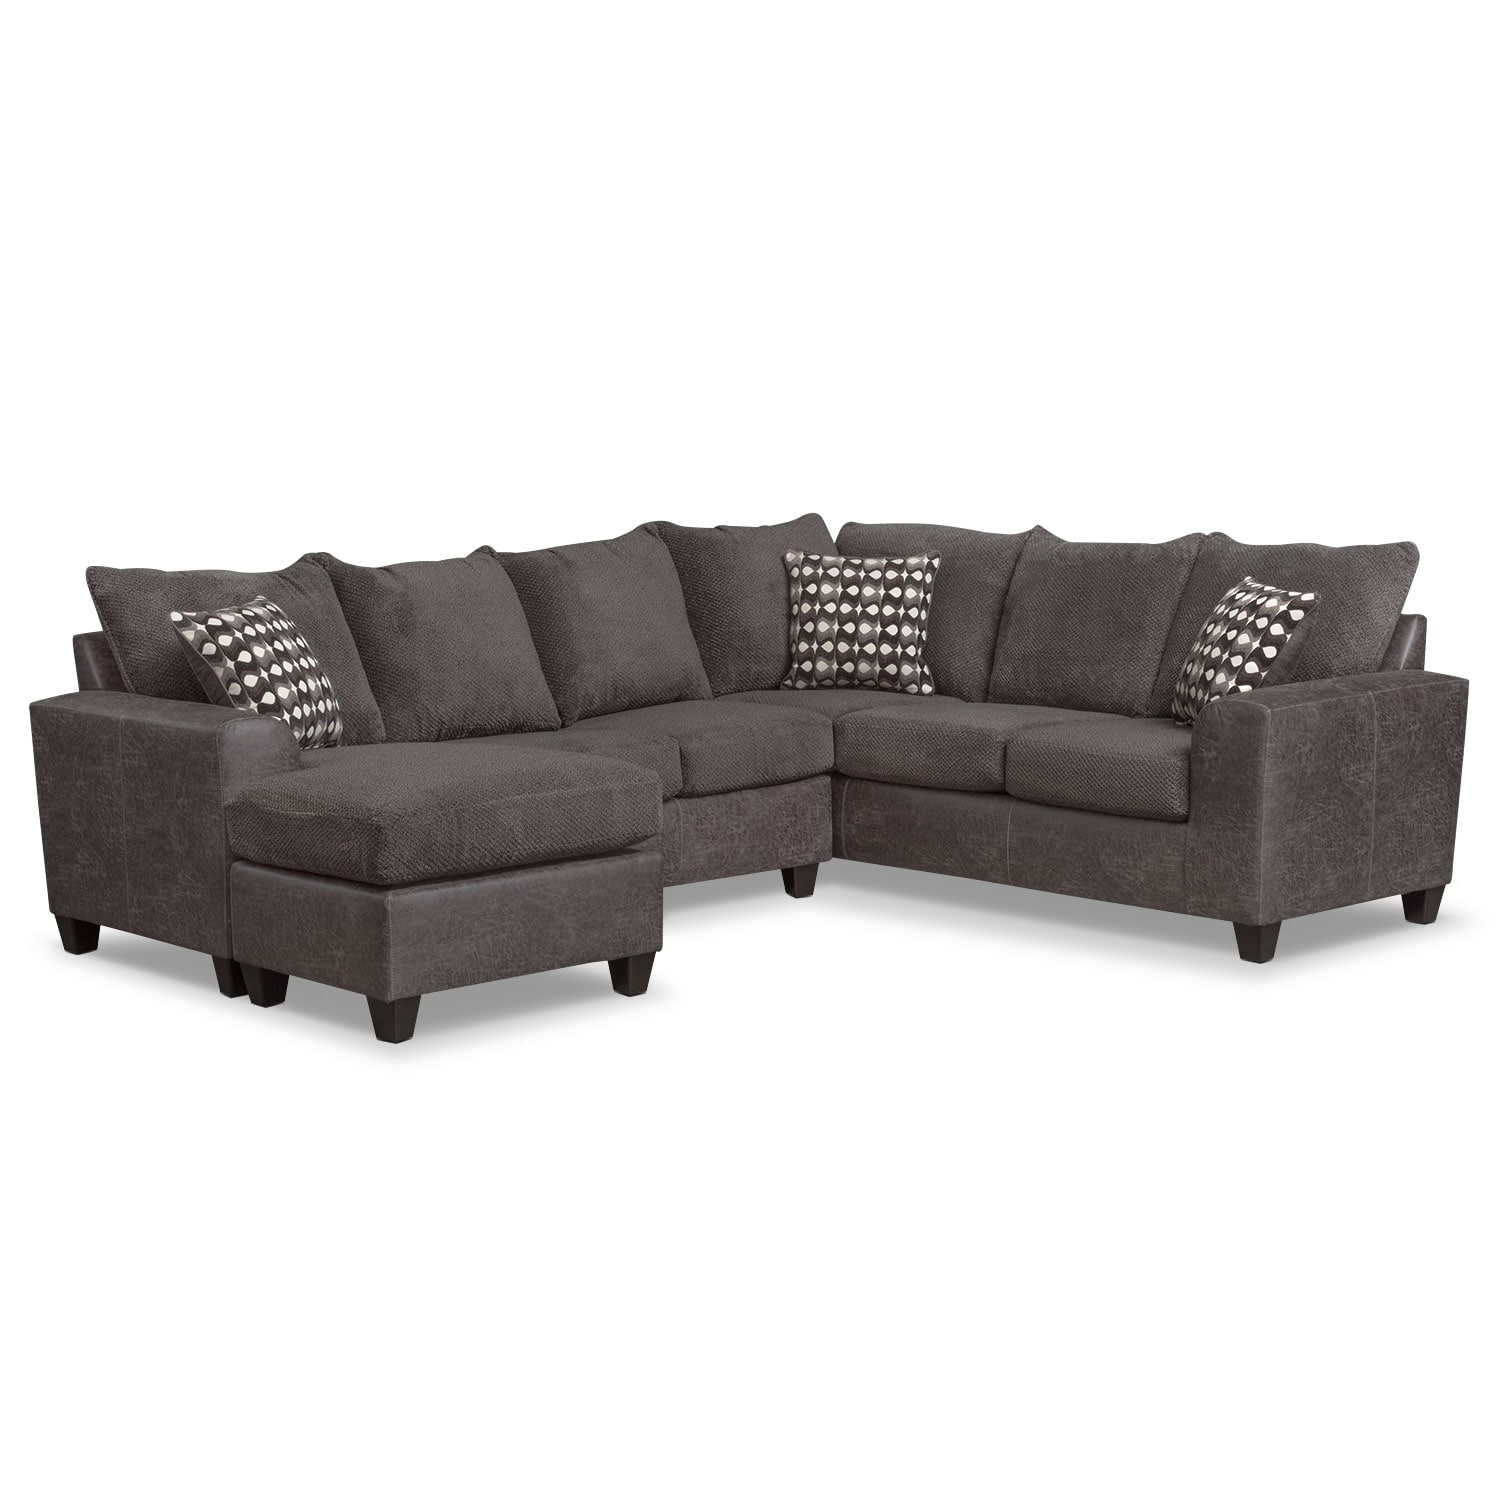 Surprising Brando 3 Piece Sectional With Modular Chaise Creativecarmelina Interior Chair Design Creativecarmelinacom